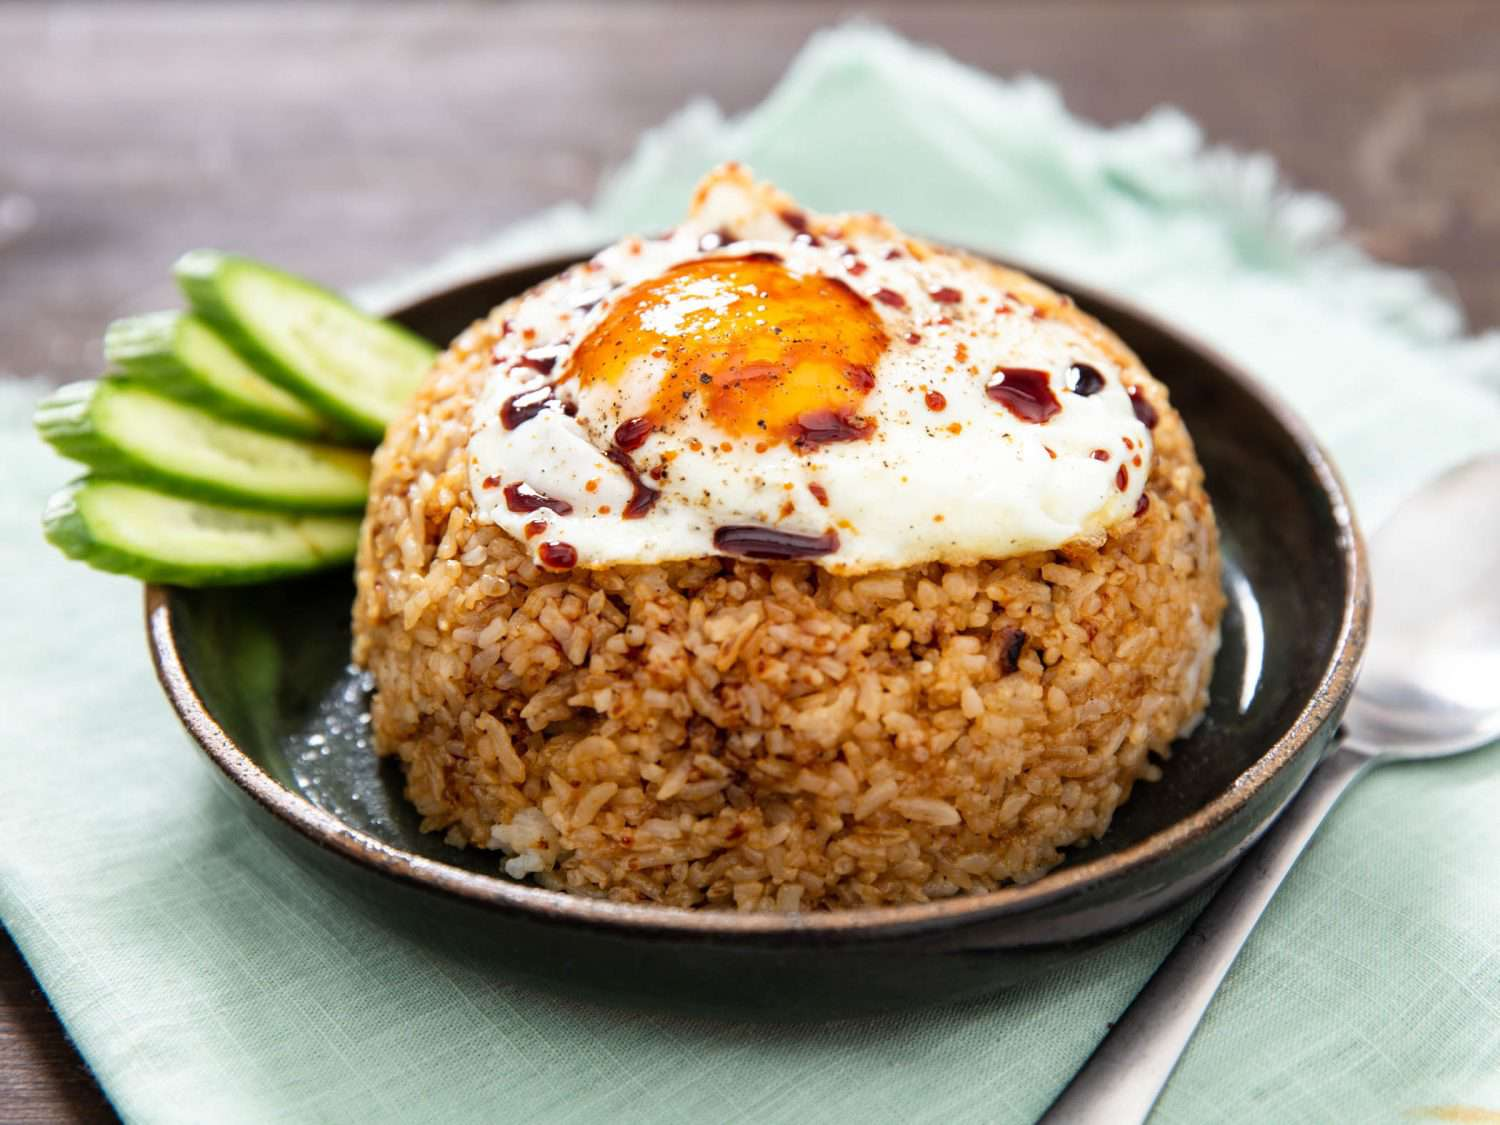 Nasi goreng on plate, topped with a fried egg